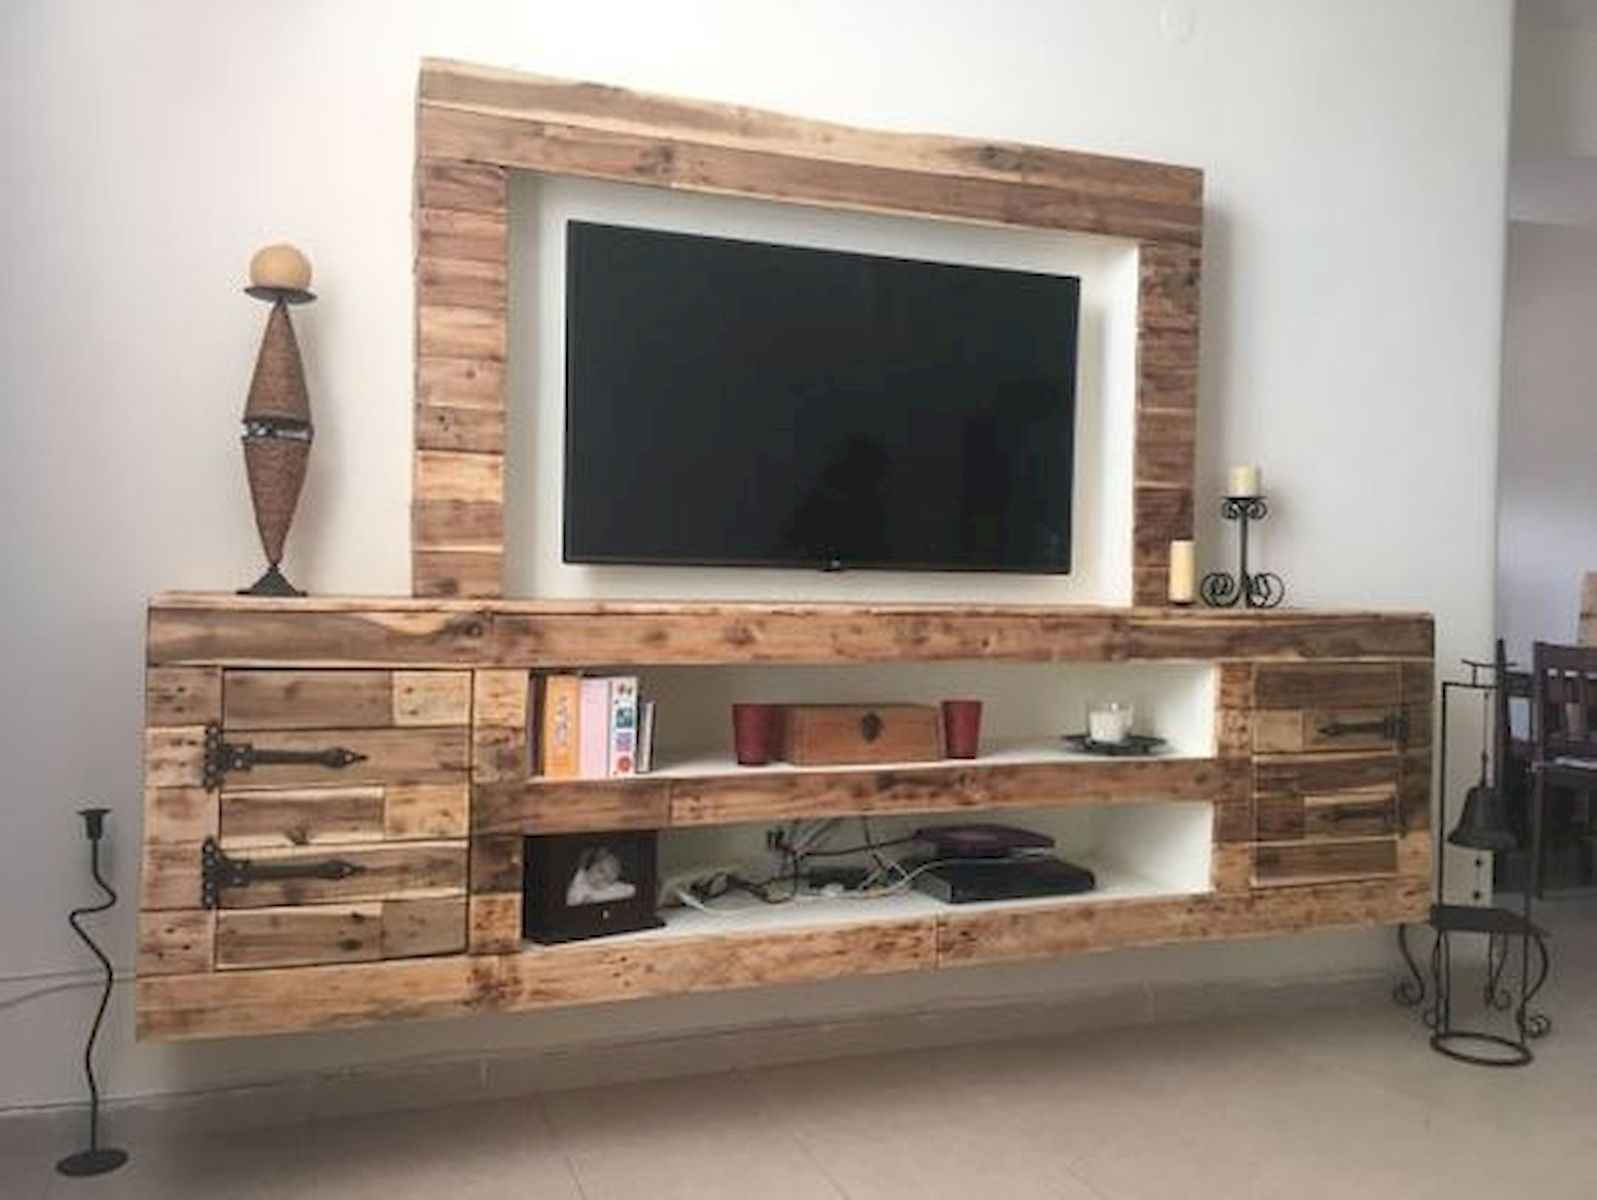 50 Favorite DIY Projects Pallet TV Stand Plans Design Ideas (13)